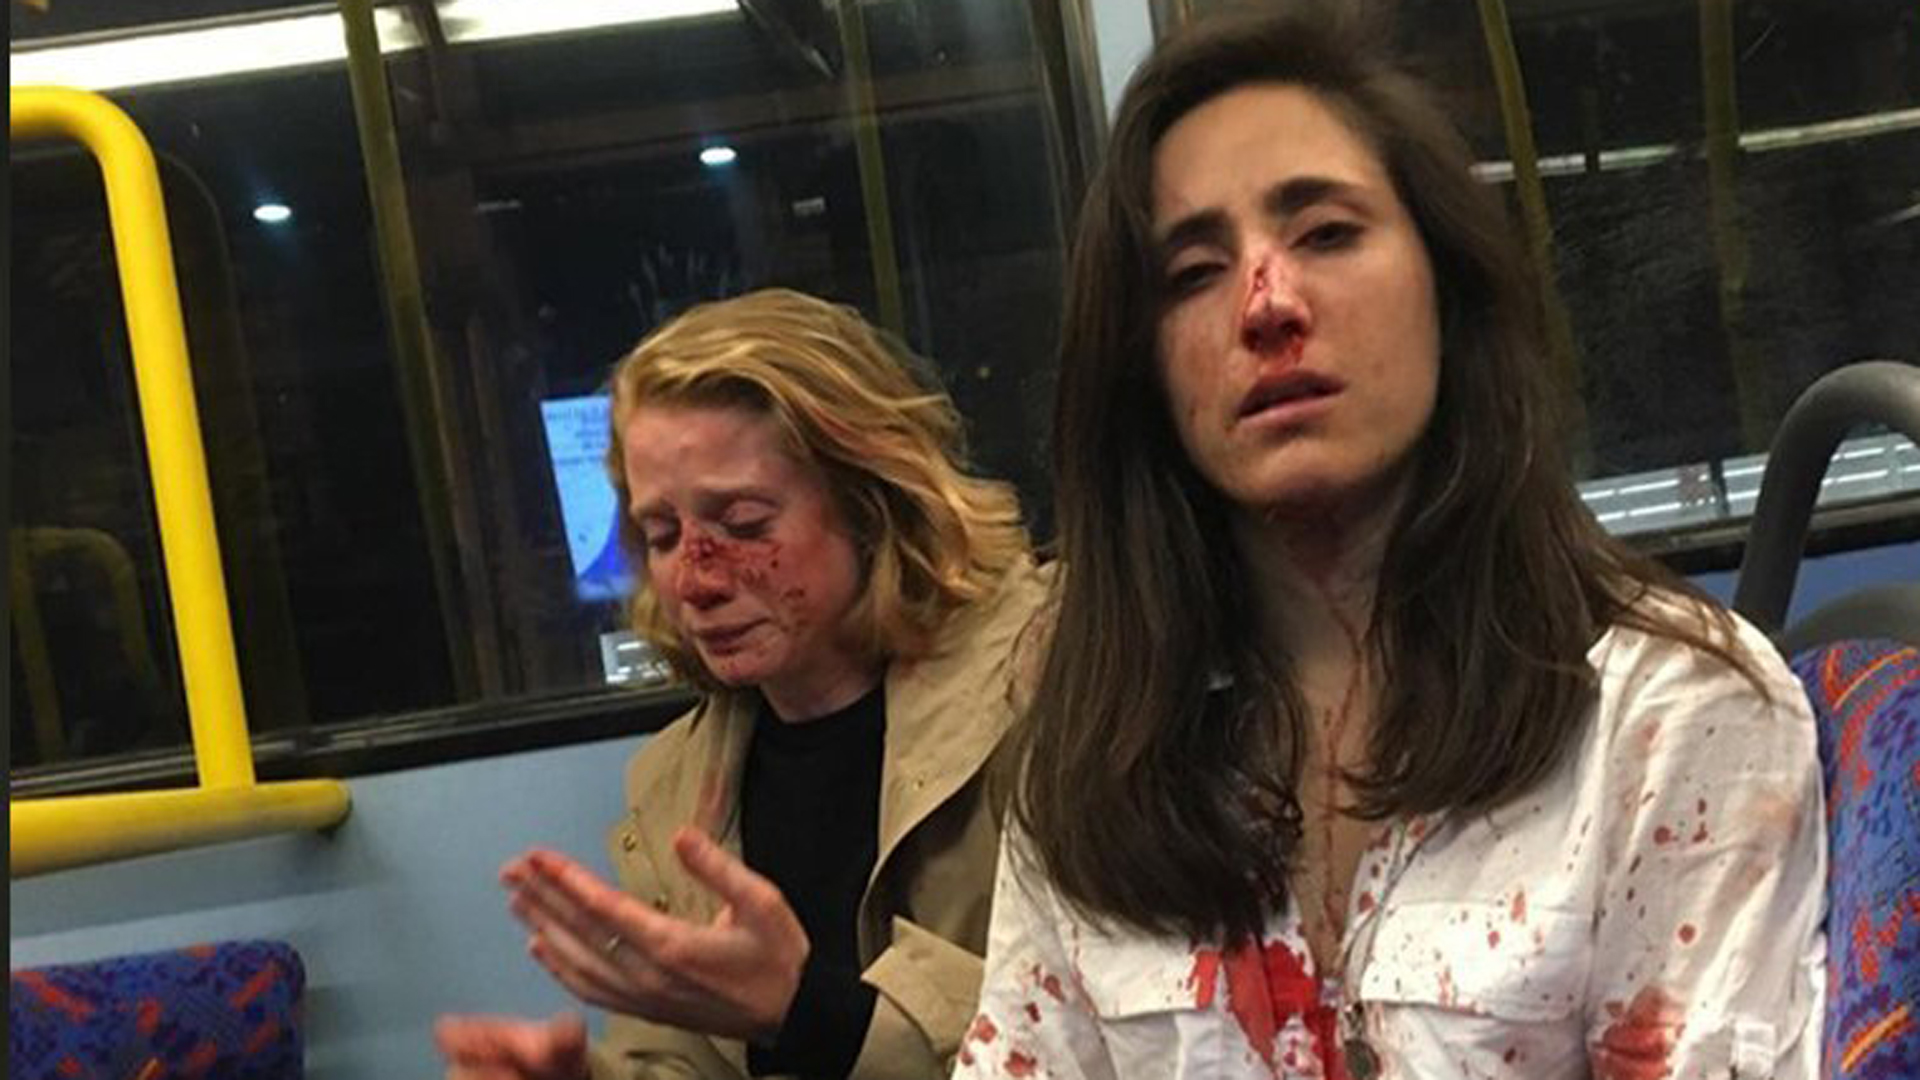 Melania Geymonat, pictured on the right, posted this photo of herself and her girlfriend to Facebook on June 5, 2019 after they were attacked on a London bus. (Credit: CNN)